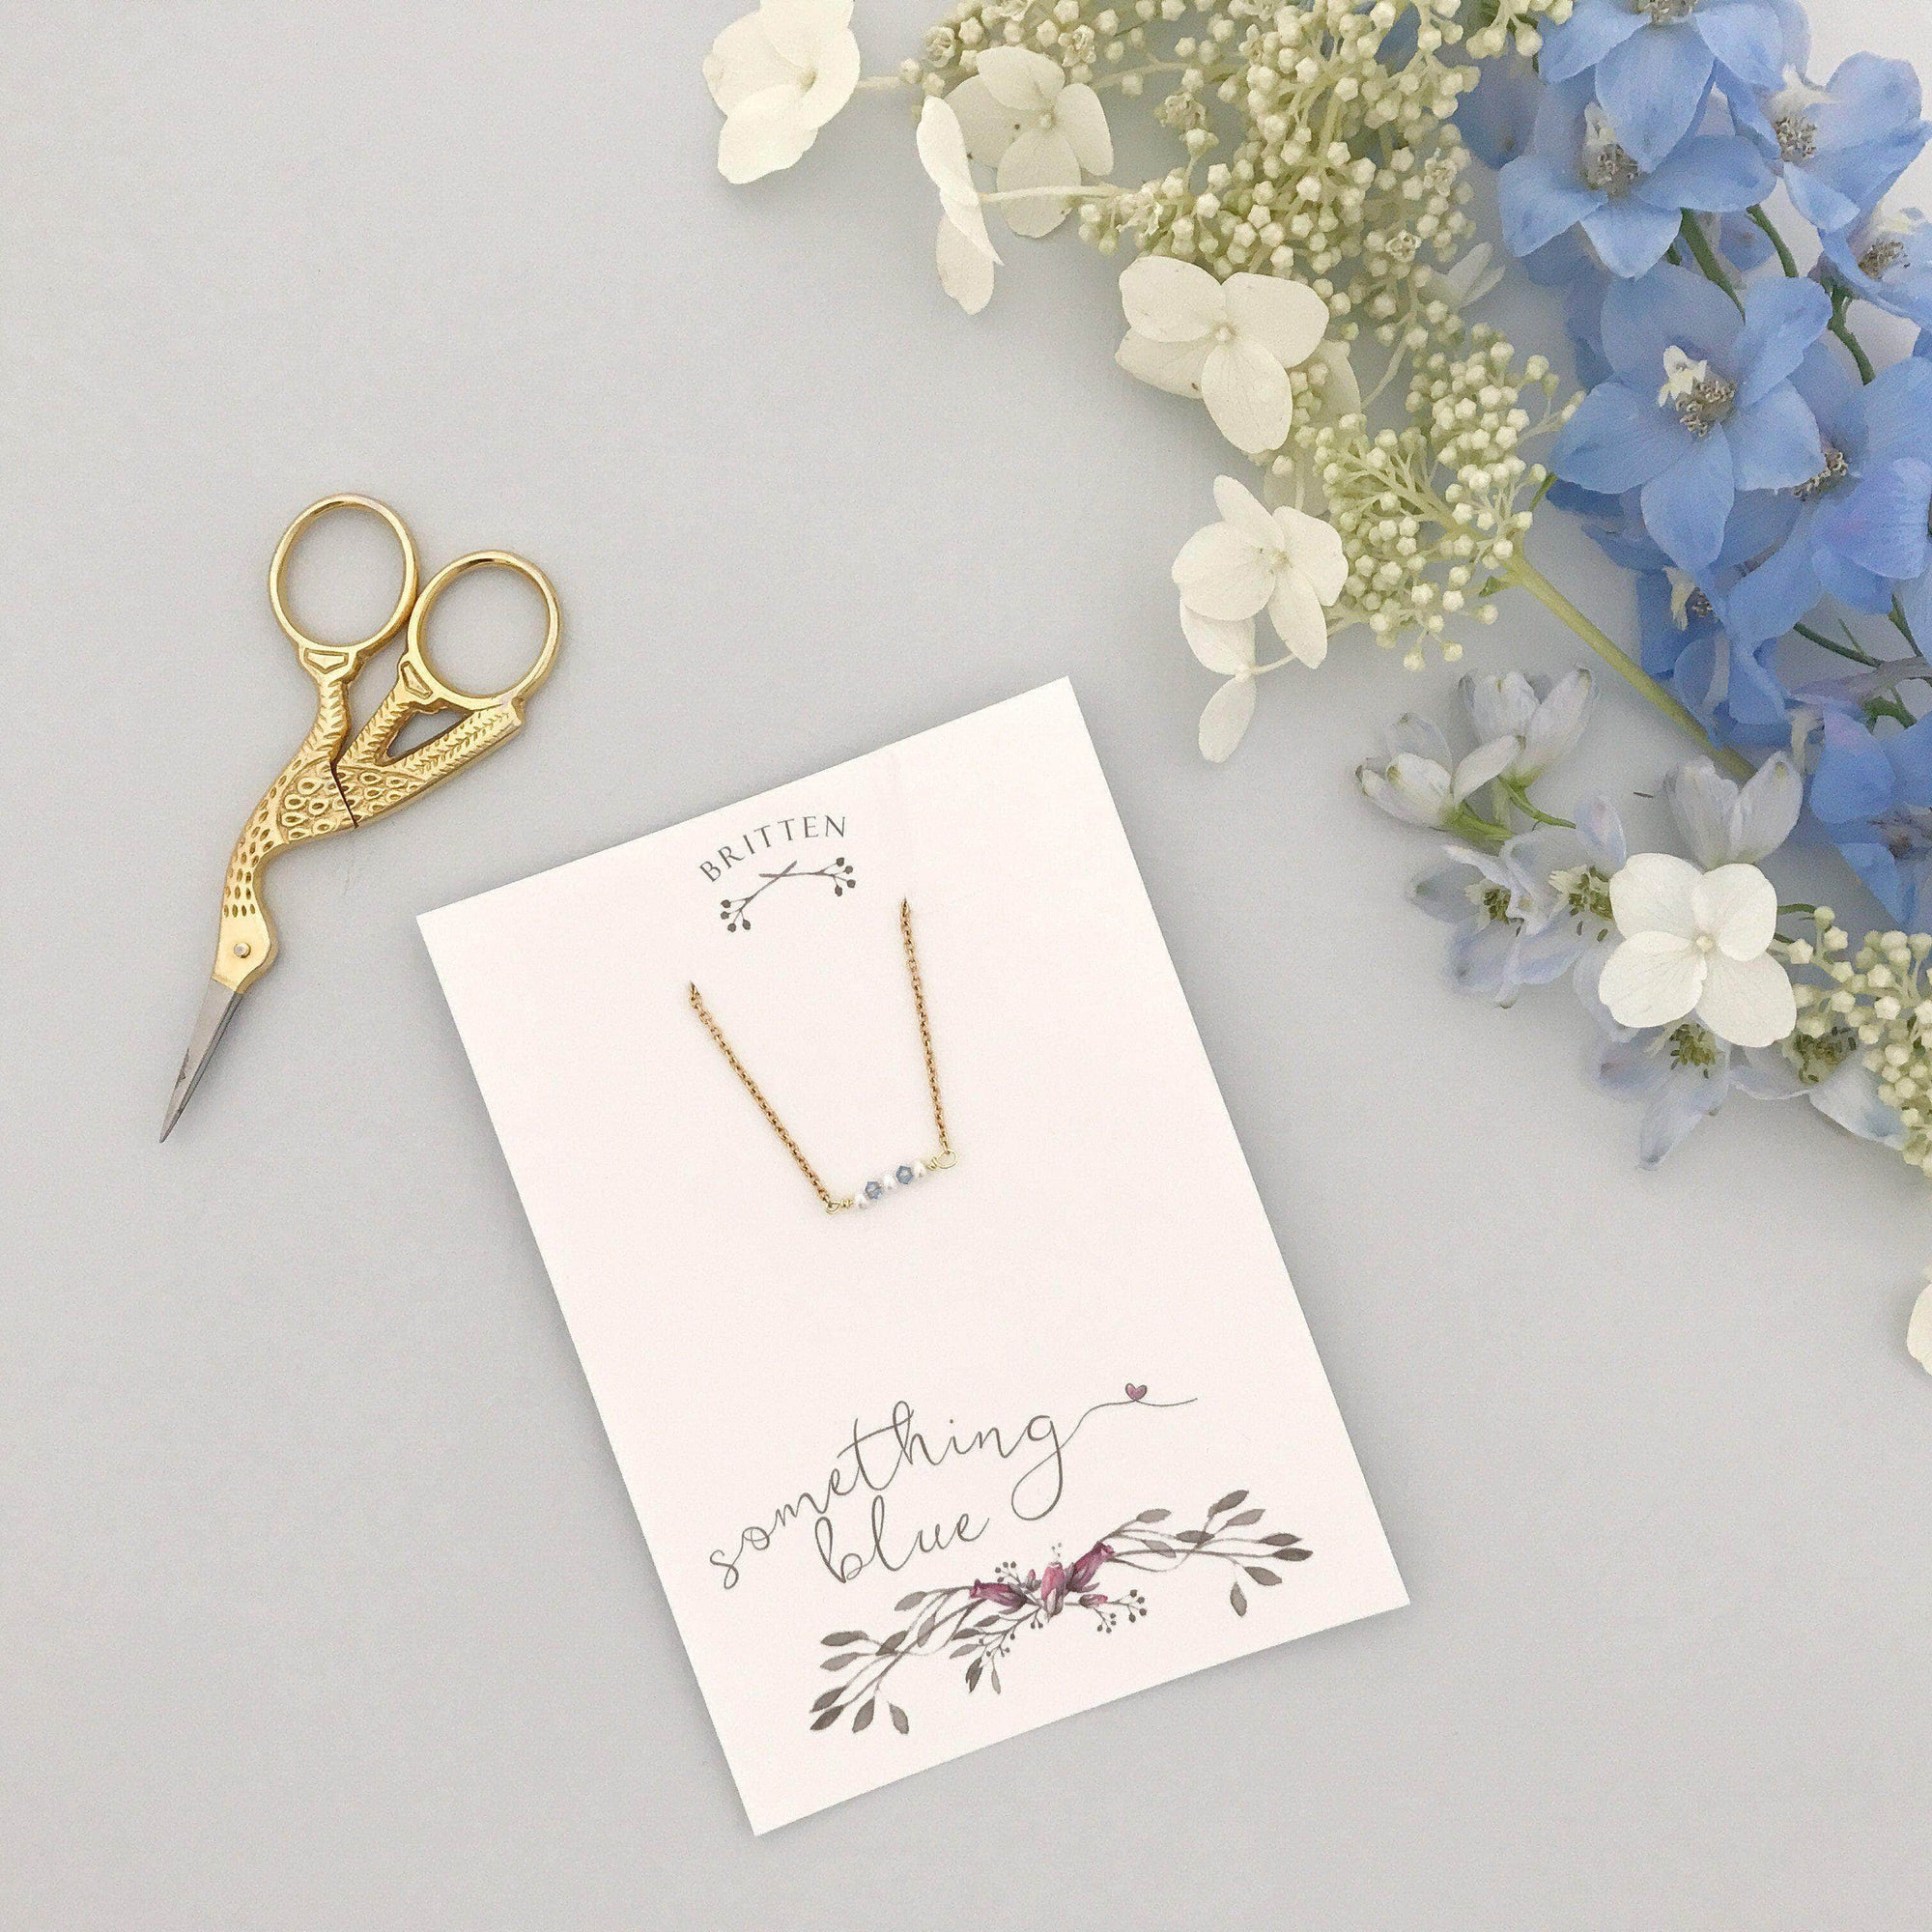 Wedding Necklace Gold 'Something blue' gift gold necklace - 'Mollie'